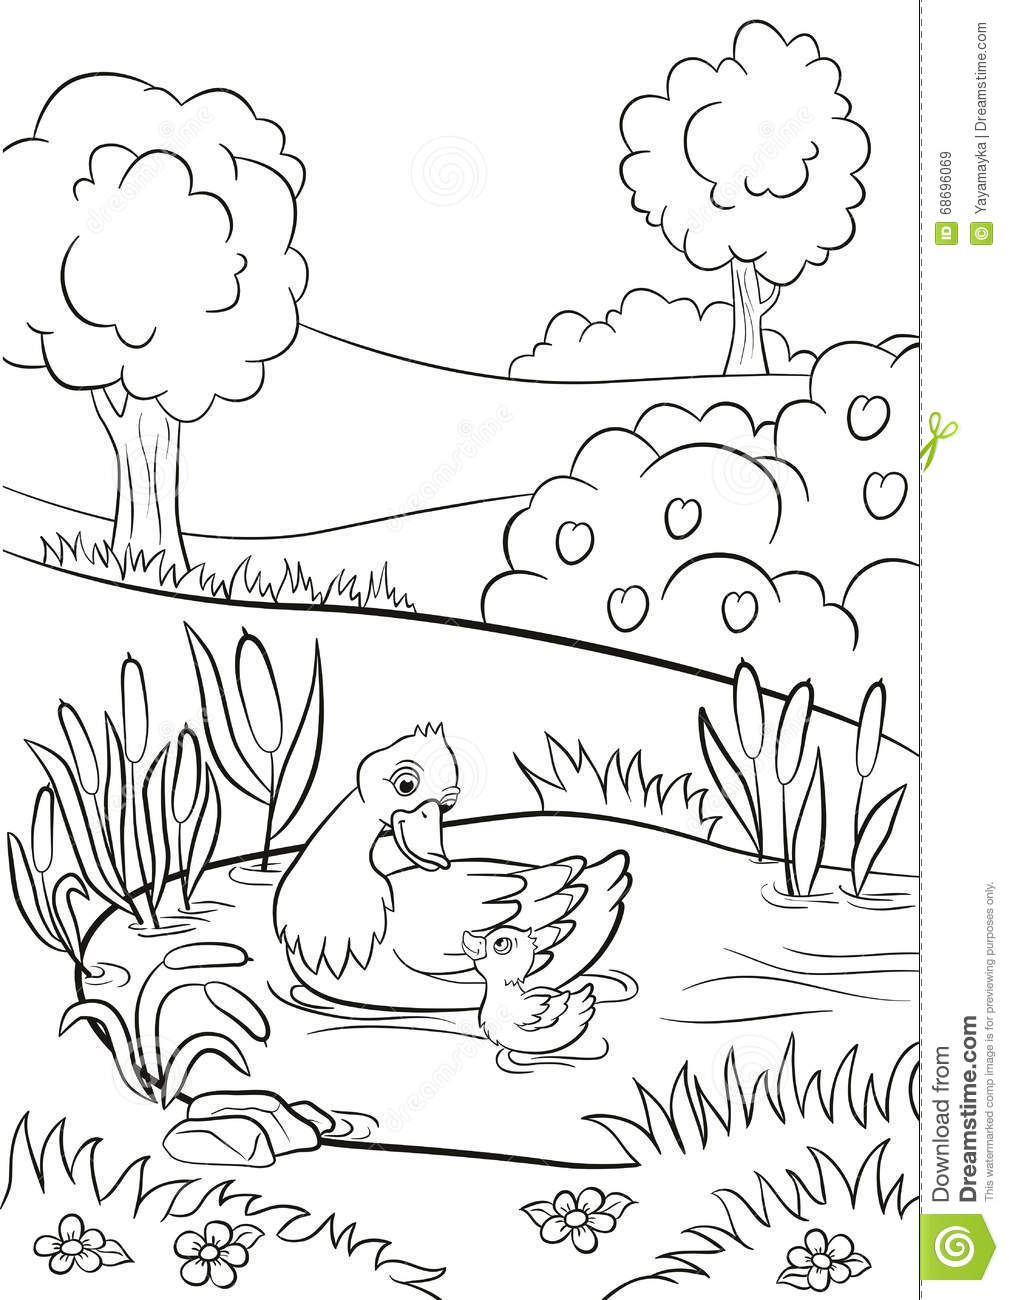 Tree coloring pages only coloring pages - Coloring Pages Kind Duck And Little Cute Duckling Swim On The Pond